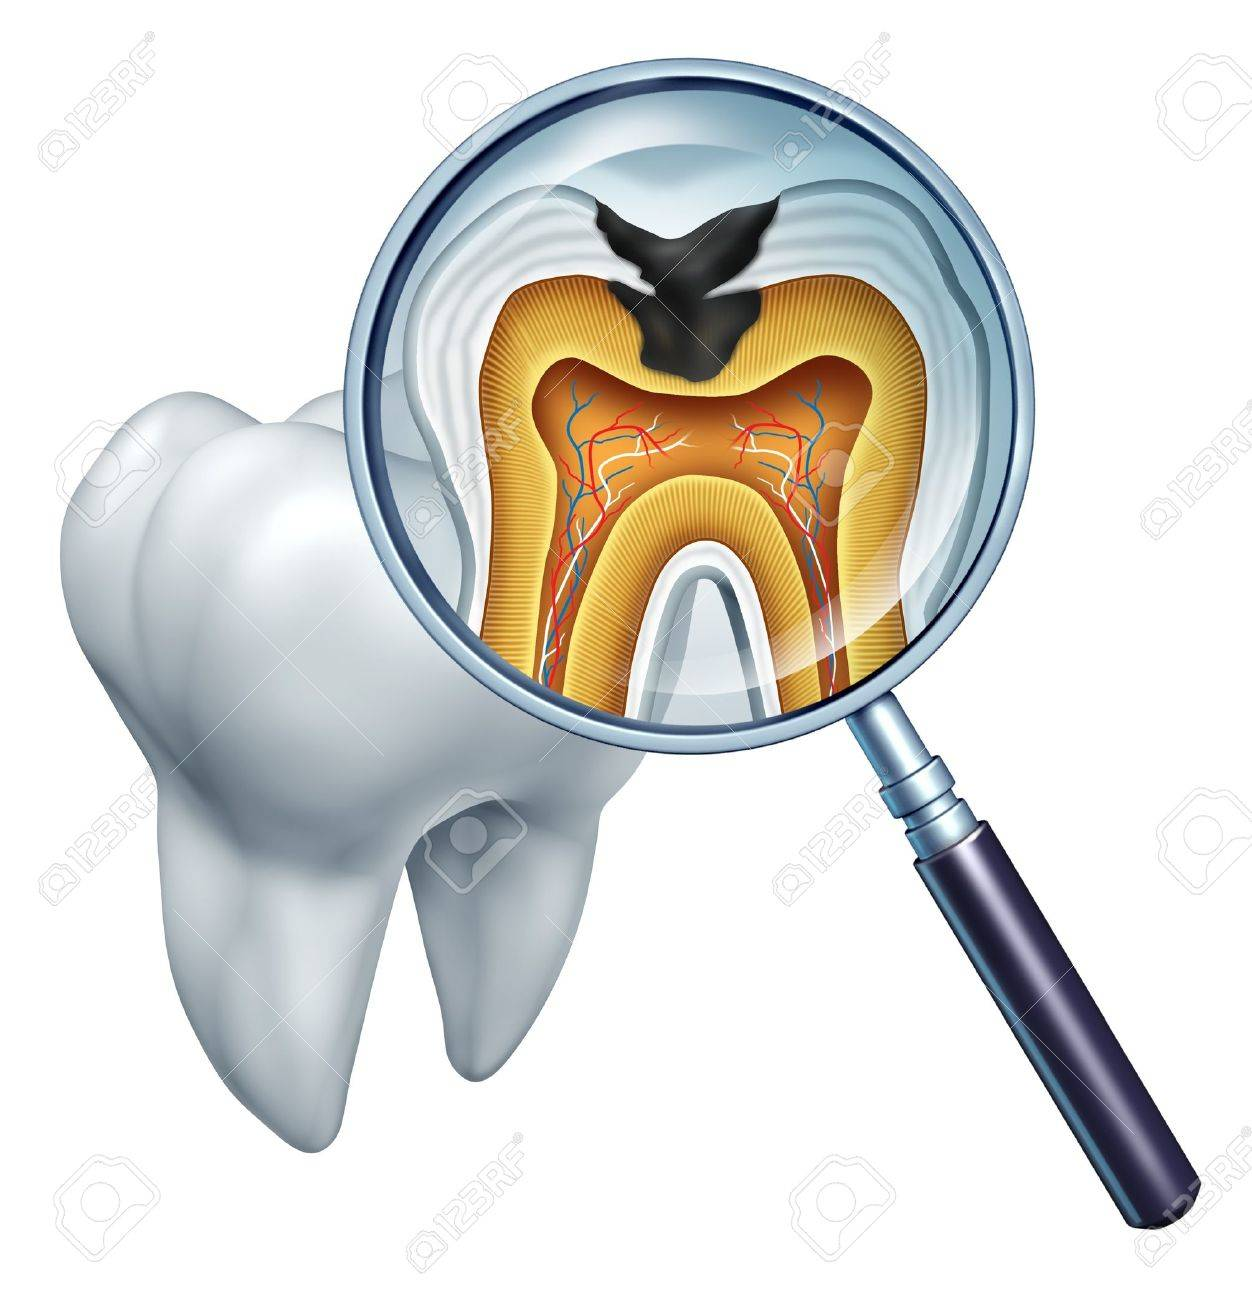 Tooth cavity close up and cavities symbol showing a magnifying glass with a cross section of a tooth anatomy in decay due to bacteria and acids in oral health care showing rotting and disease due to lack of brushing - 14730974